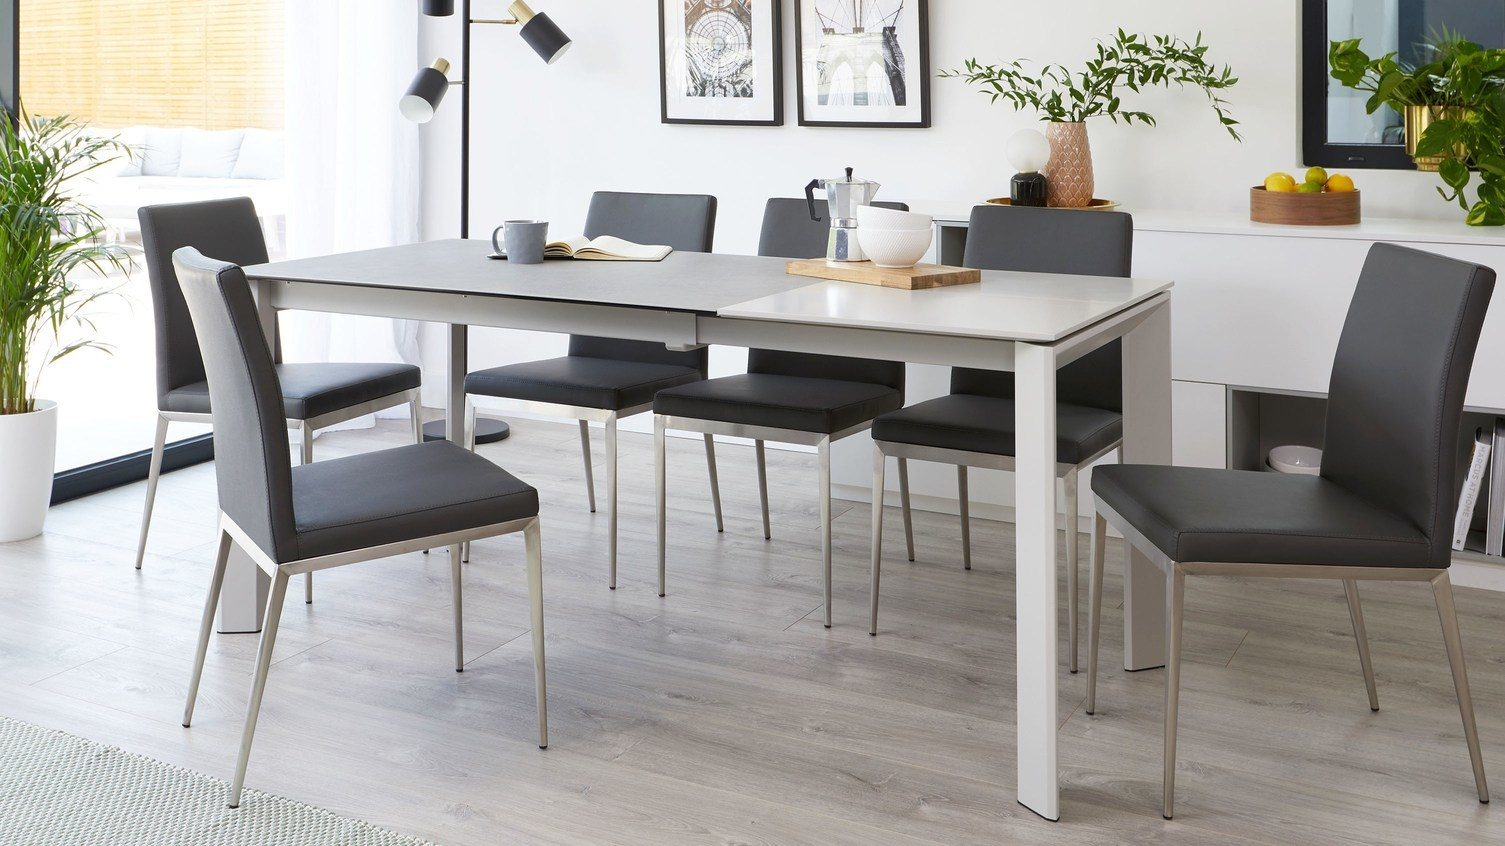 Louis Light Grey Ceramic Extending Dining Table - extended